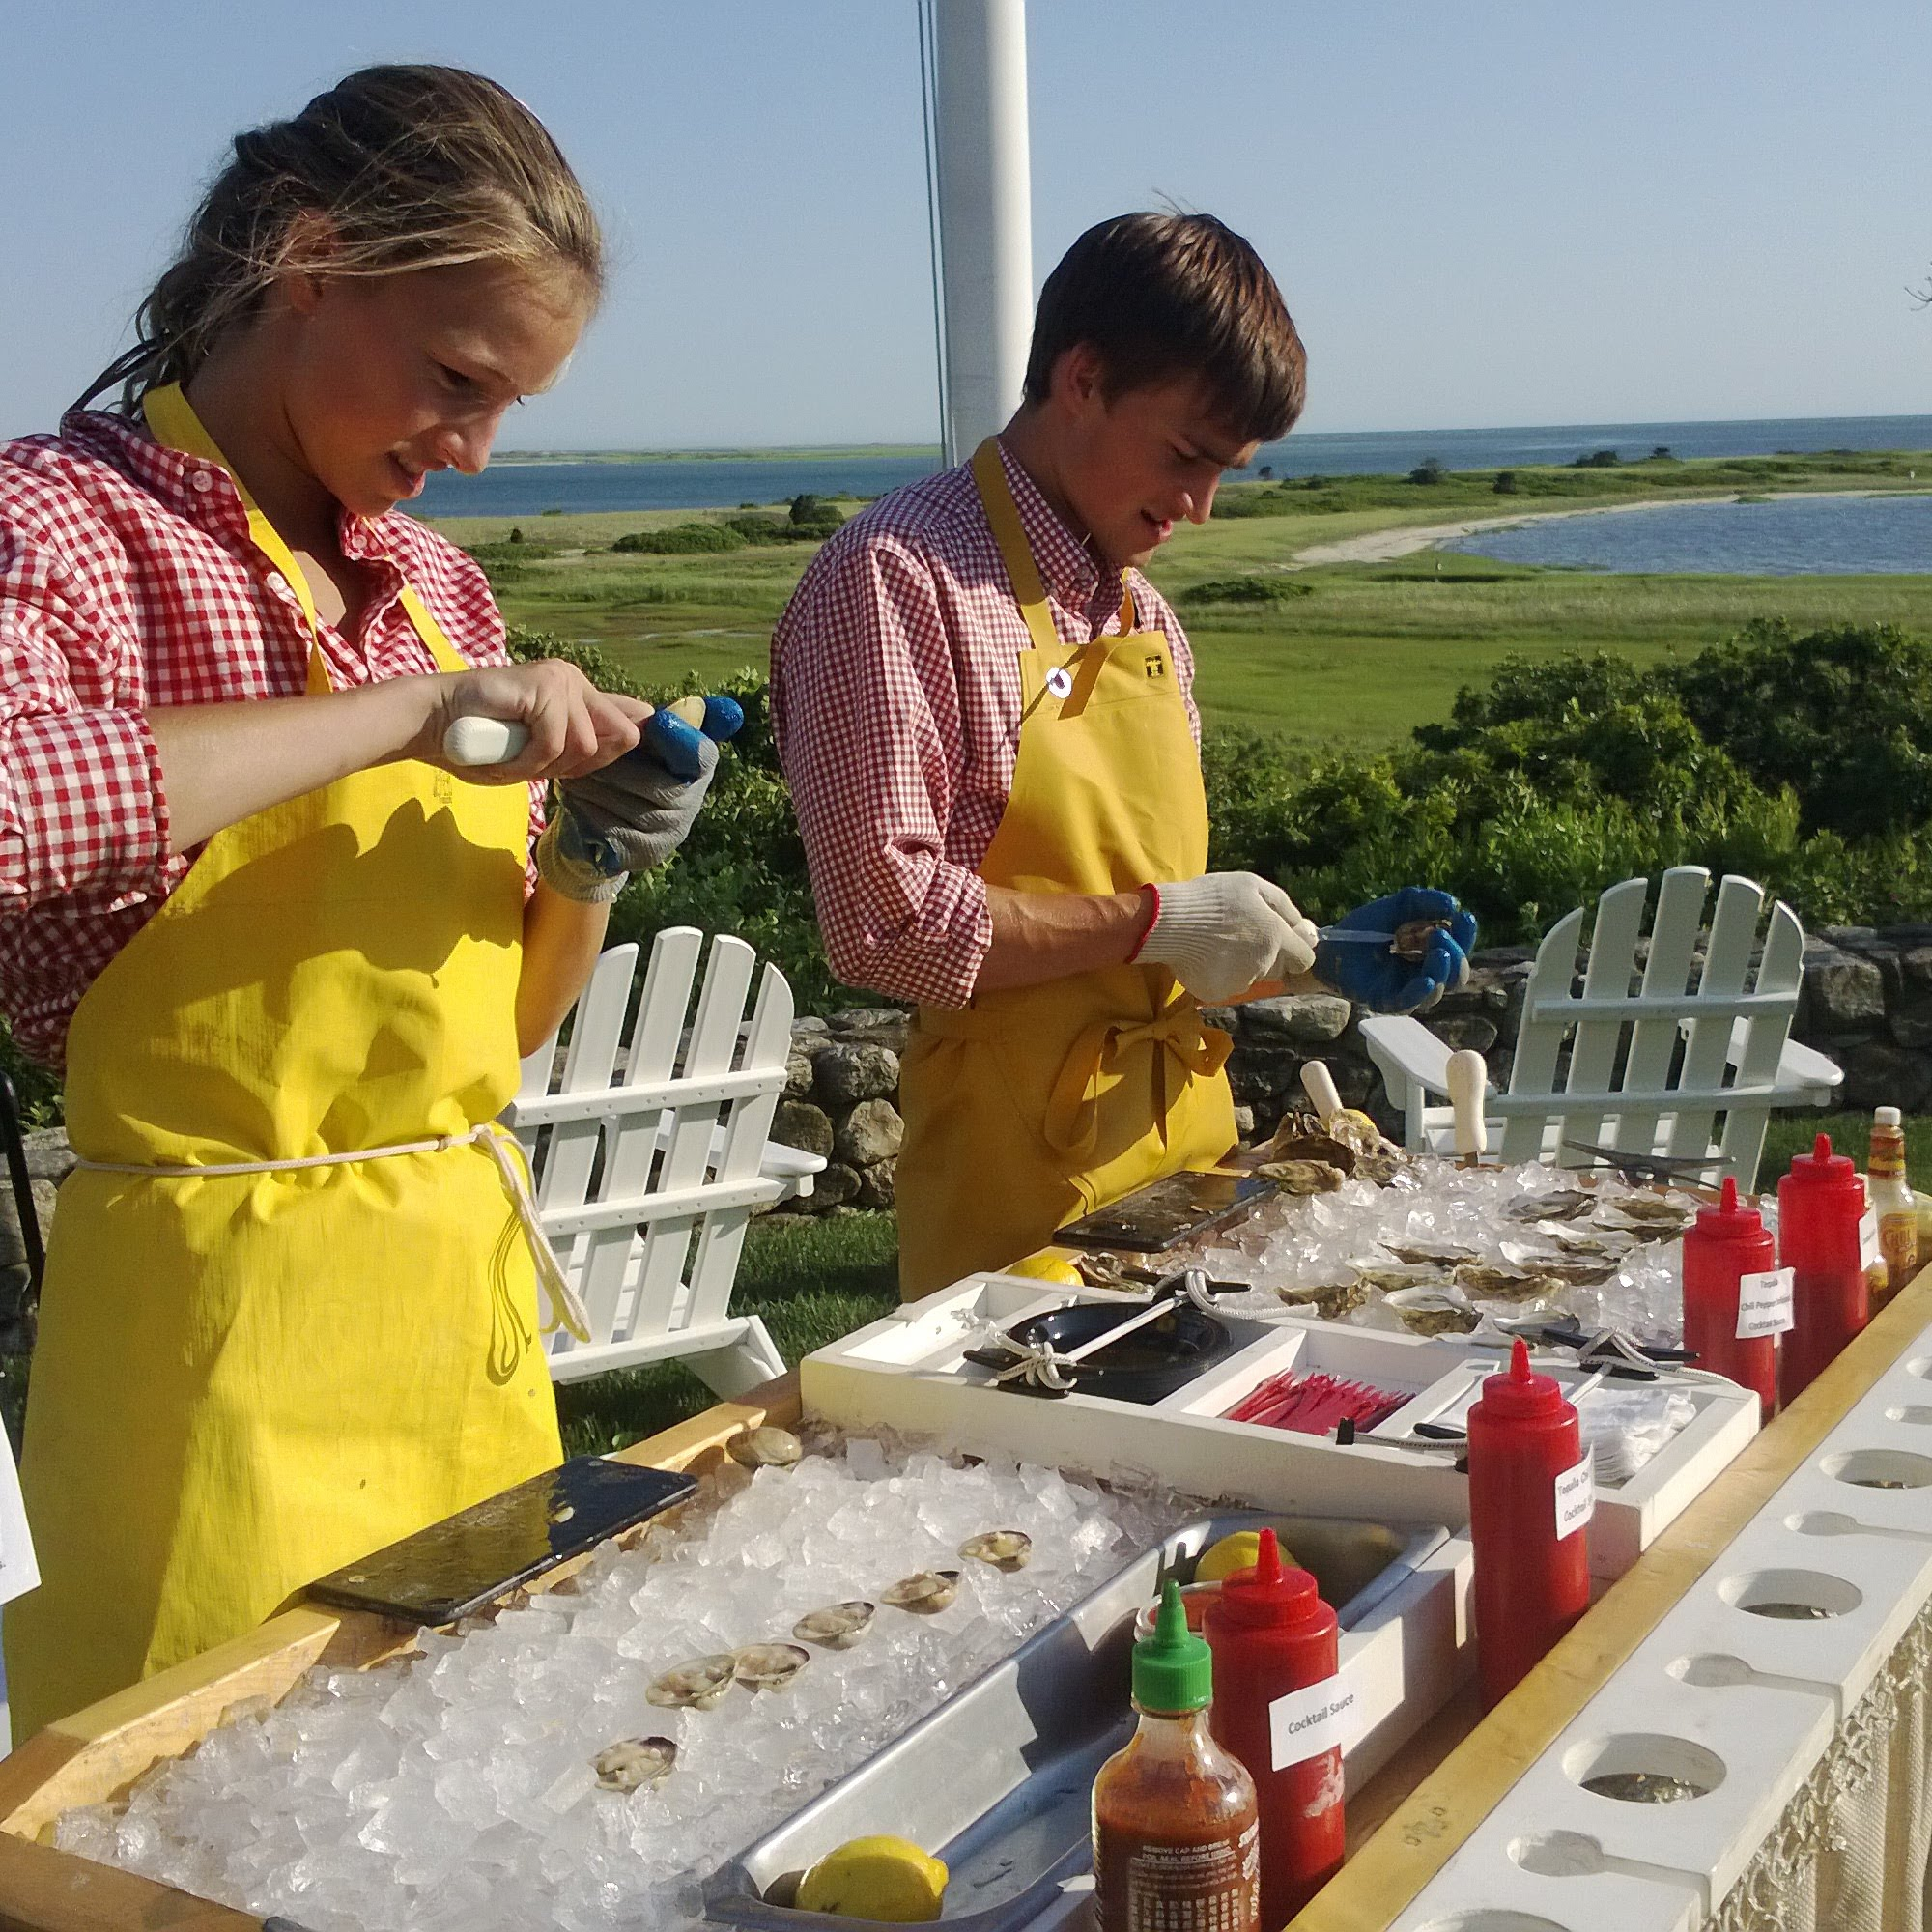 Your Elwood's Raw Bar experience includes:  Local Oysters and Littleneck Clams  Shrimp Cocktail(optional)  Custom designed shucking table  Shucker to open oysters and clams  Raw bar supplies: plates, napkins, cocktail forks, lemons, hot sauces, cocktail sauce and ice.